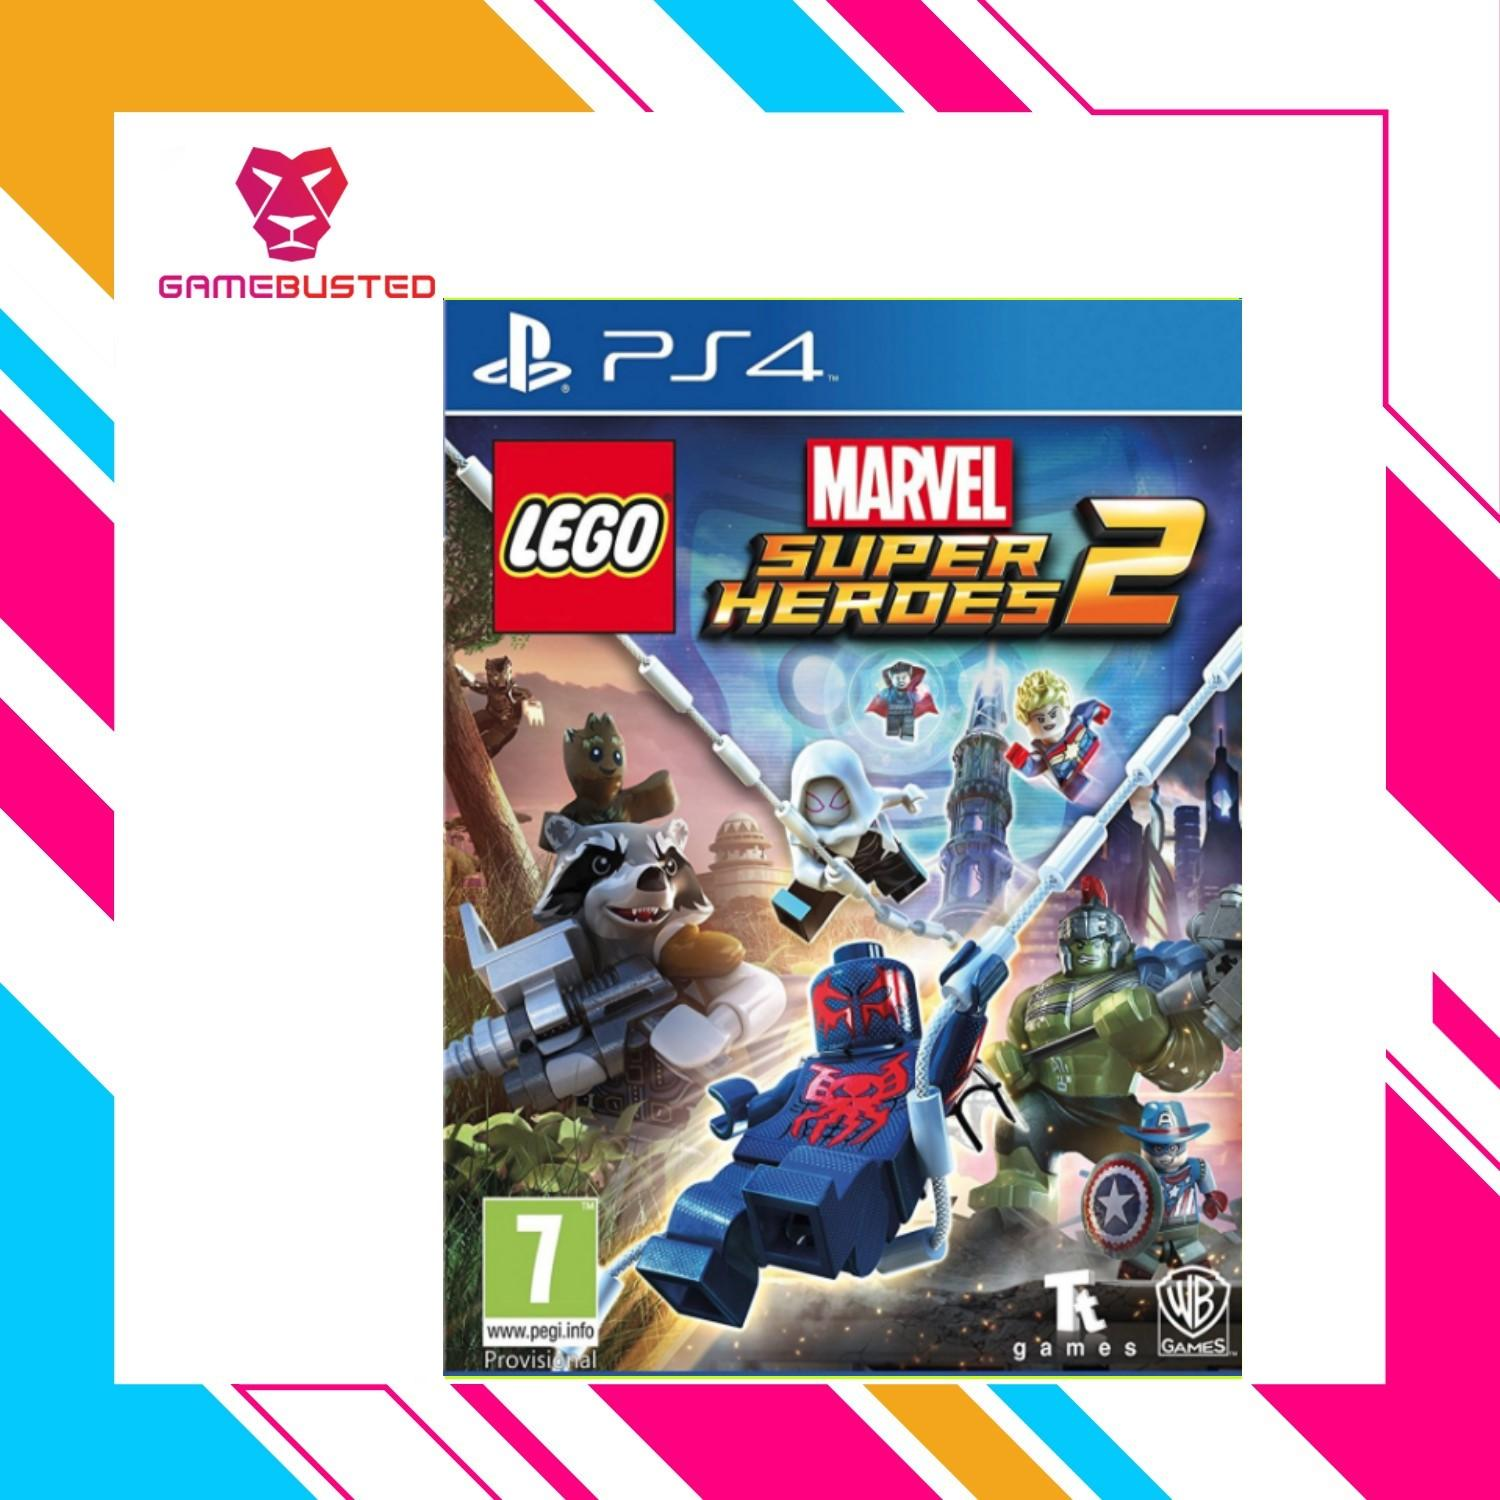 Buy Online Psp Games Best Sellers Lazada Ps4 Tekken 7 Region 3 Bonus Lego Toys Marvel Super Heroes 2 Deluxe Edition R2